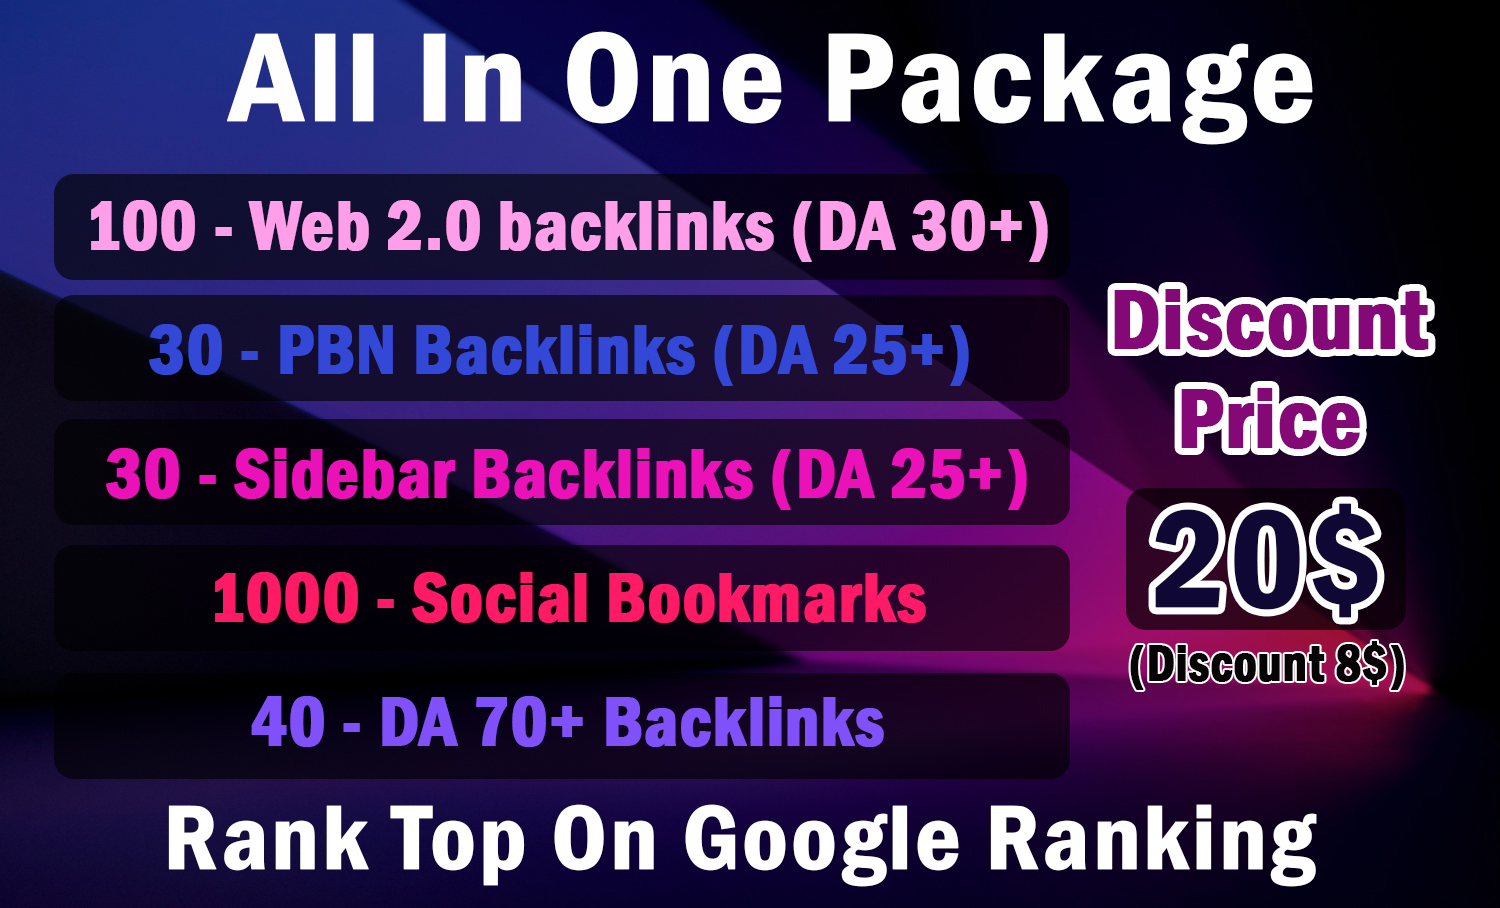 Cheapest All In One Backlinks Package for Fast Google Ranking